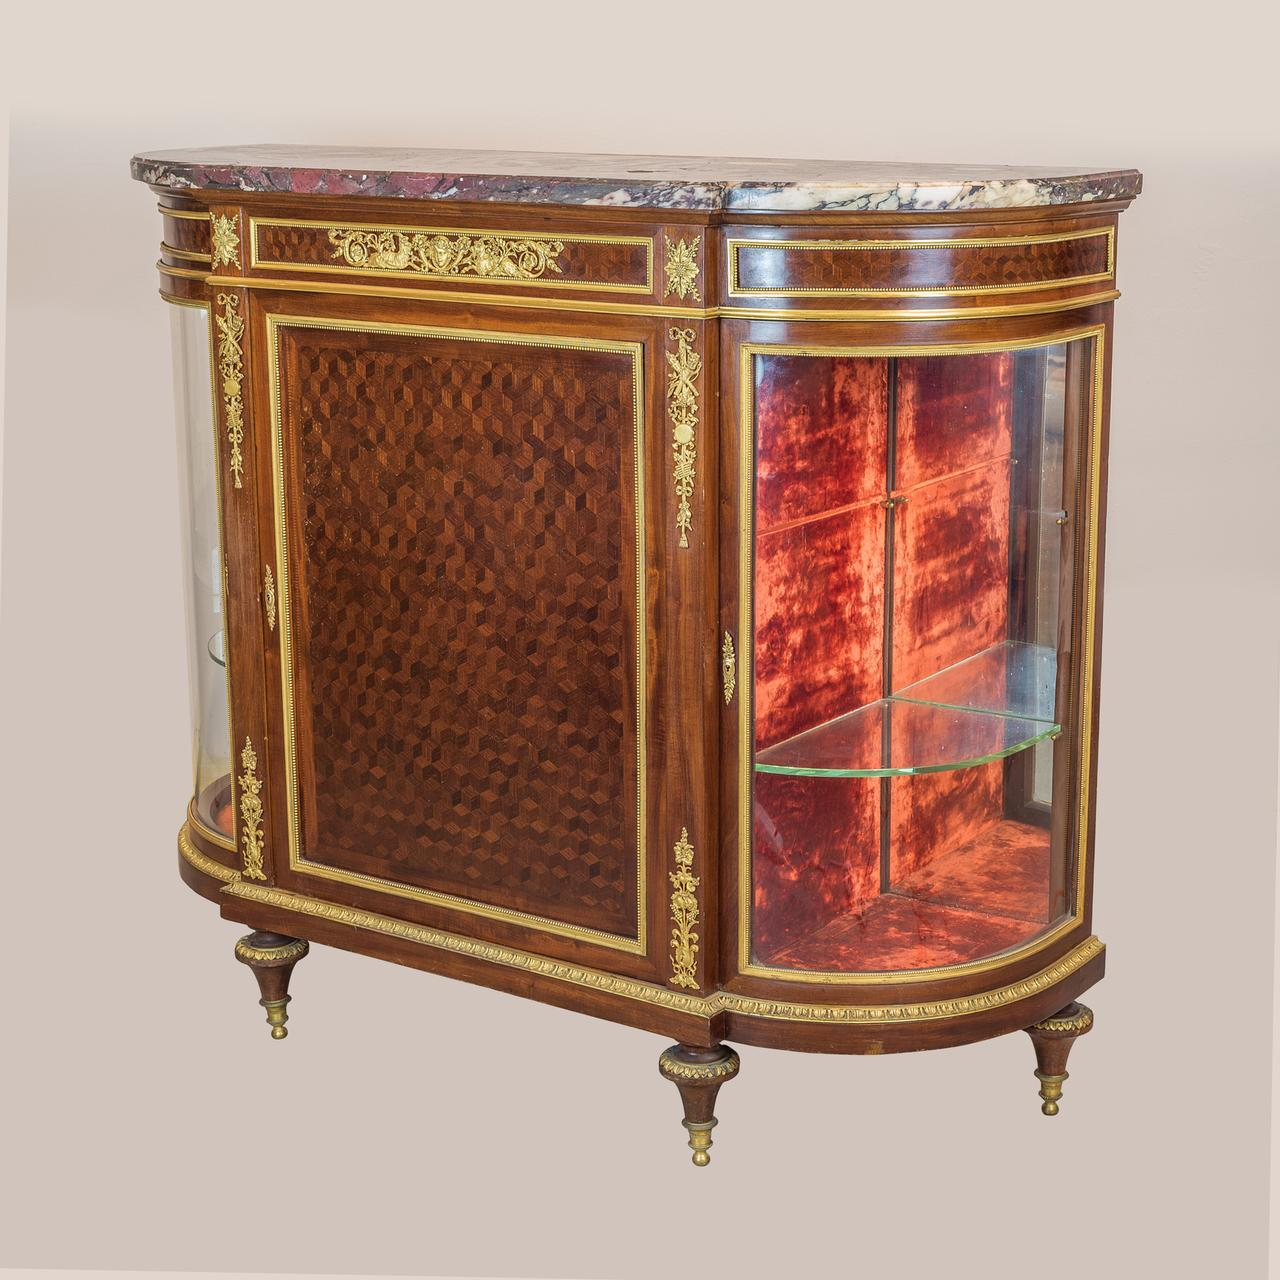 Meuble Louis 16 Louis Xvi Style Ormolu Mounted Parquetry Meuble D Appui Cabinet By Paul Sormani